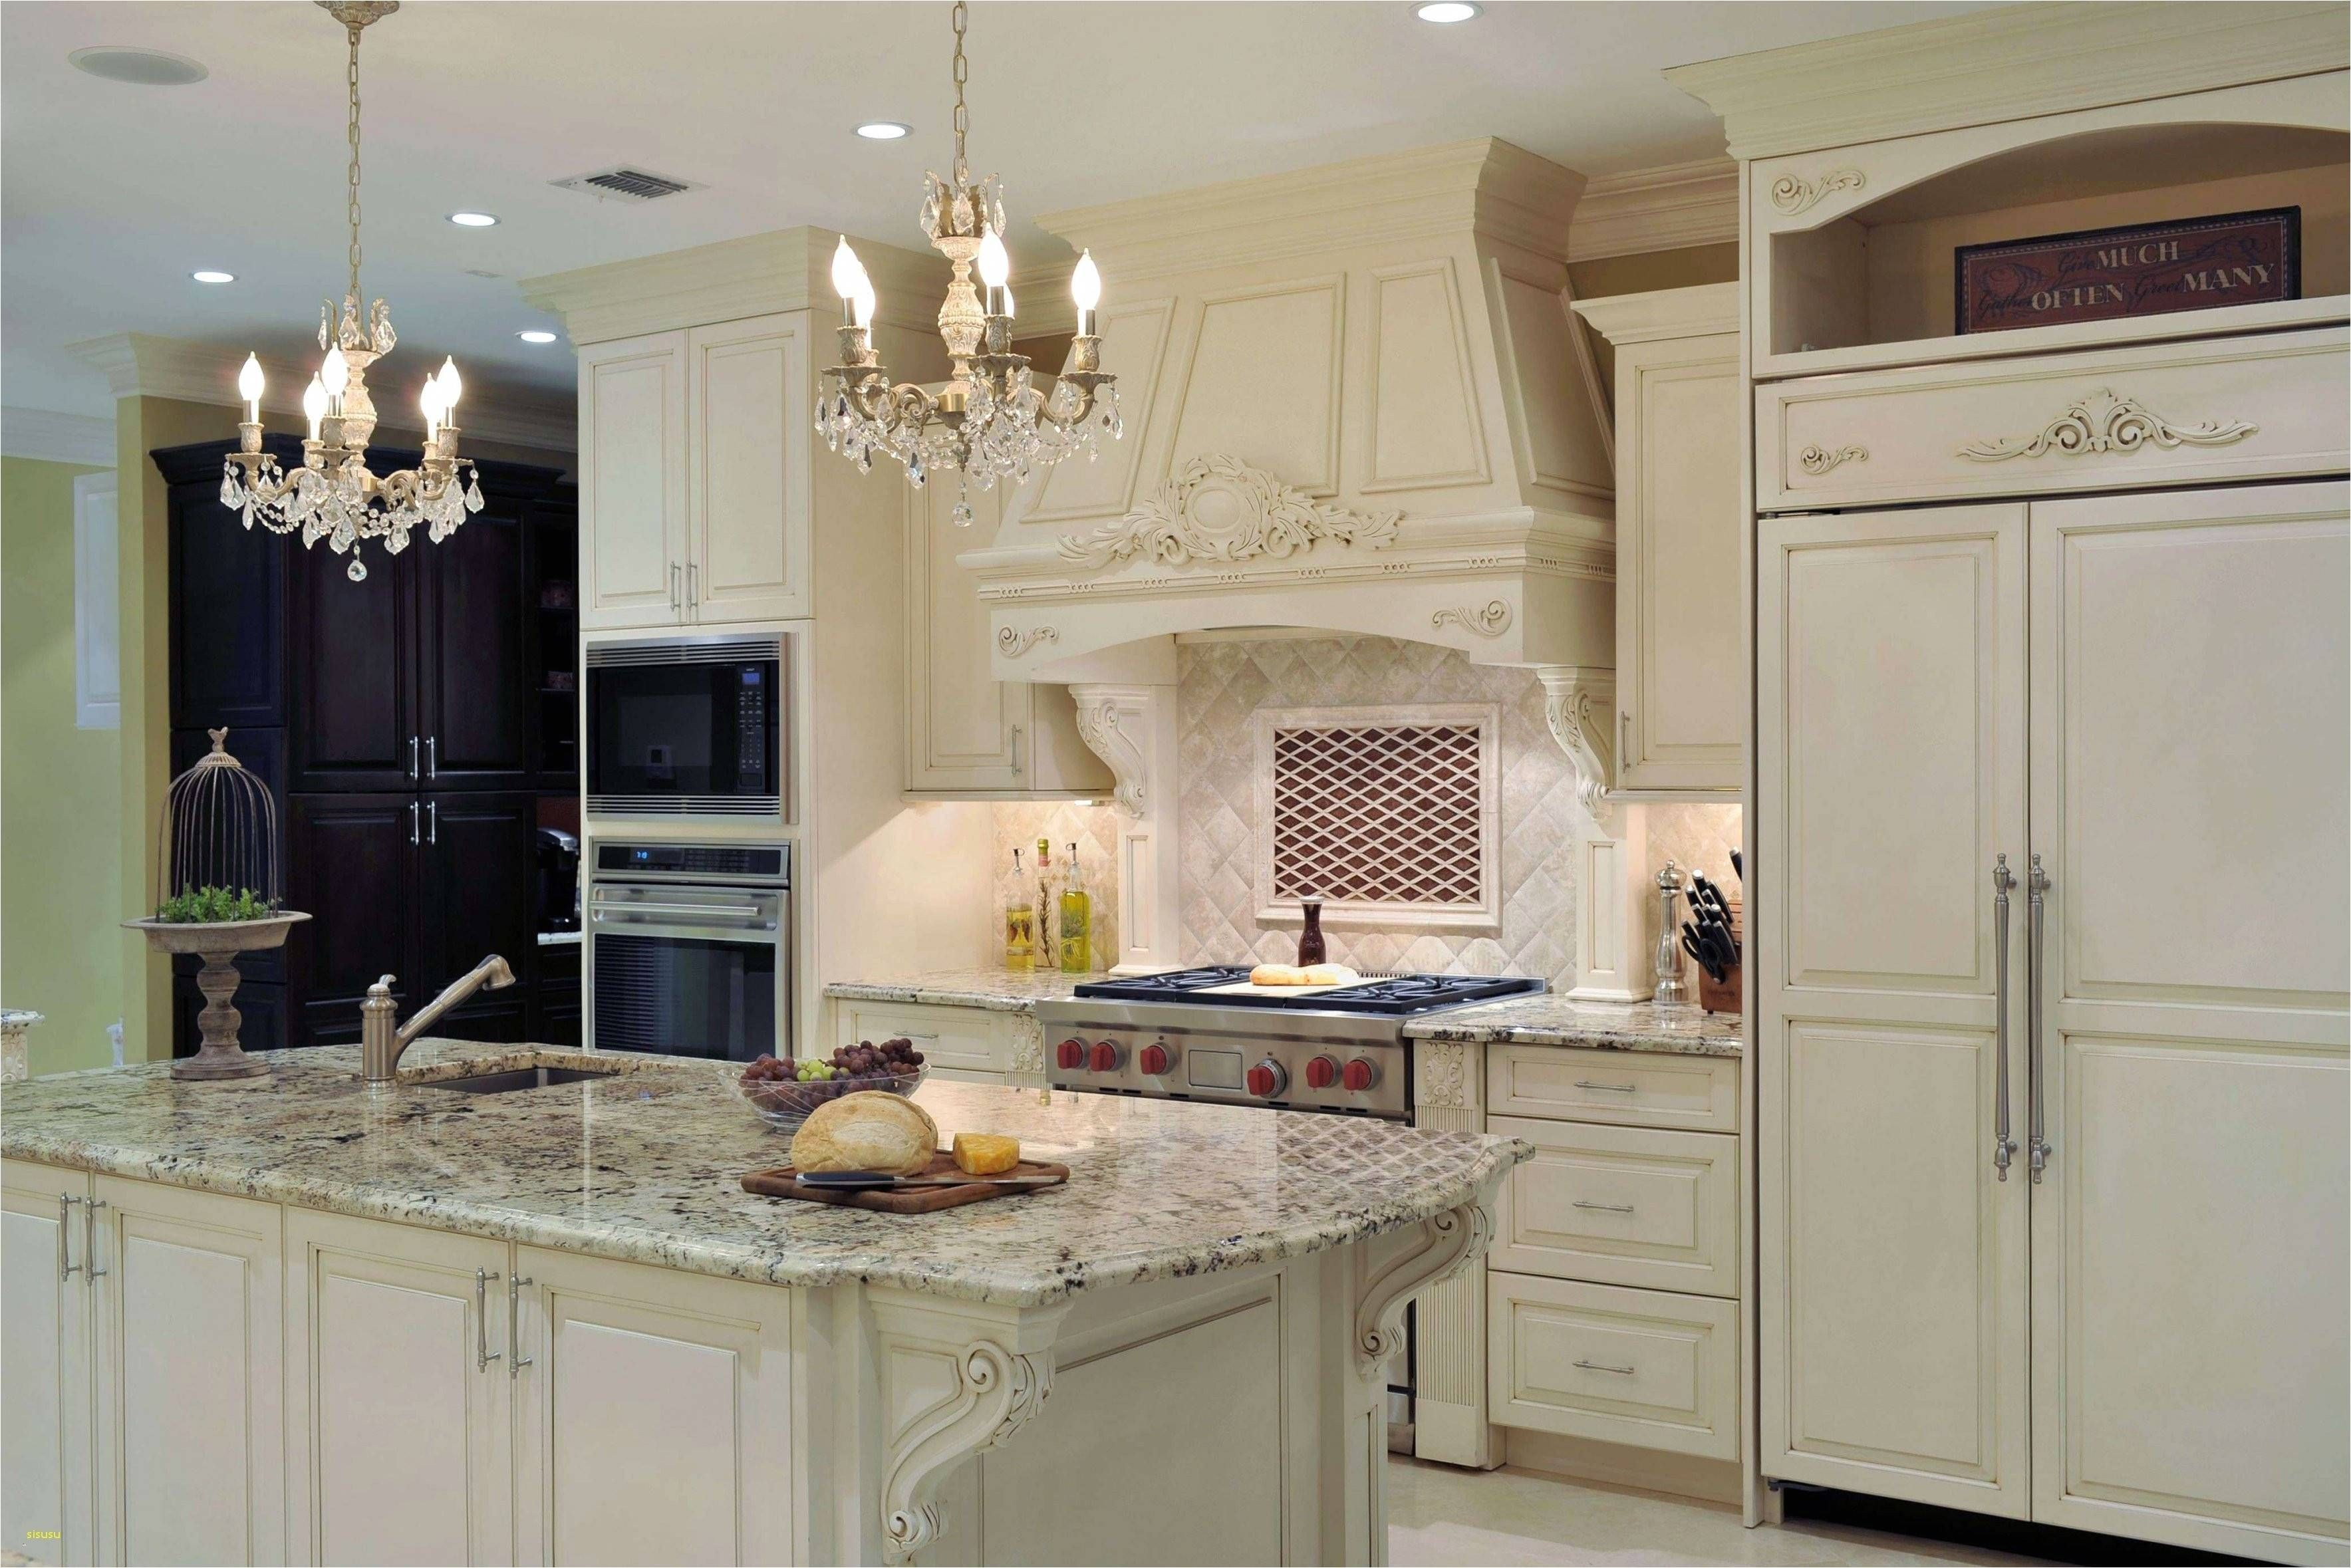 Houzz Pendant Lights In 2020 Cheap Kitchen Cabinets Beautiful Kitchen Cabinets Kitchen Backsplash Designs